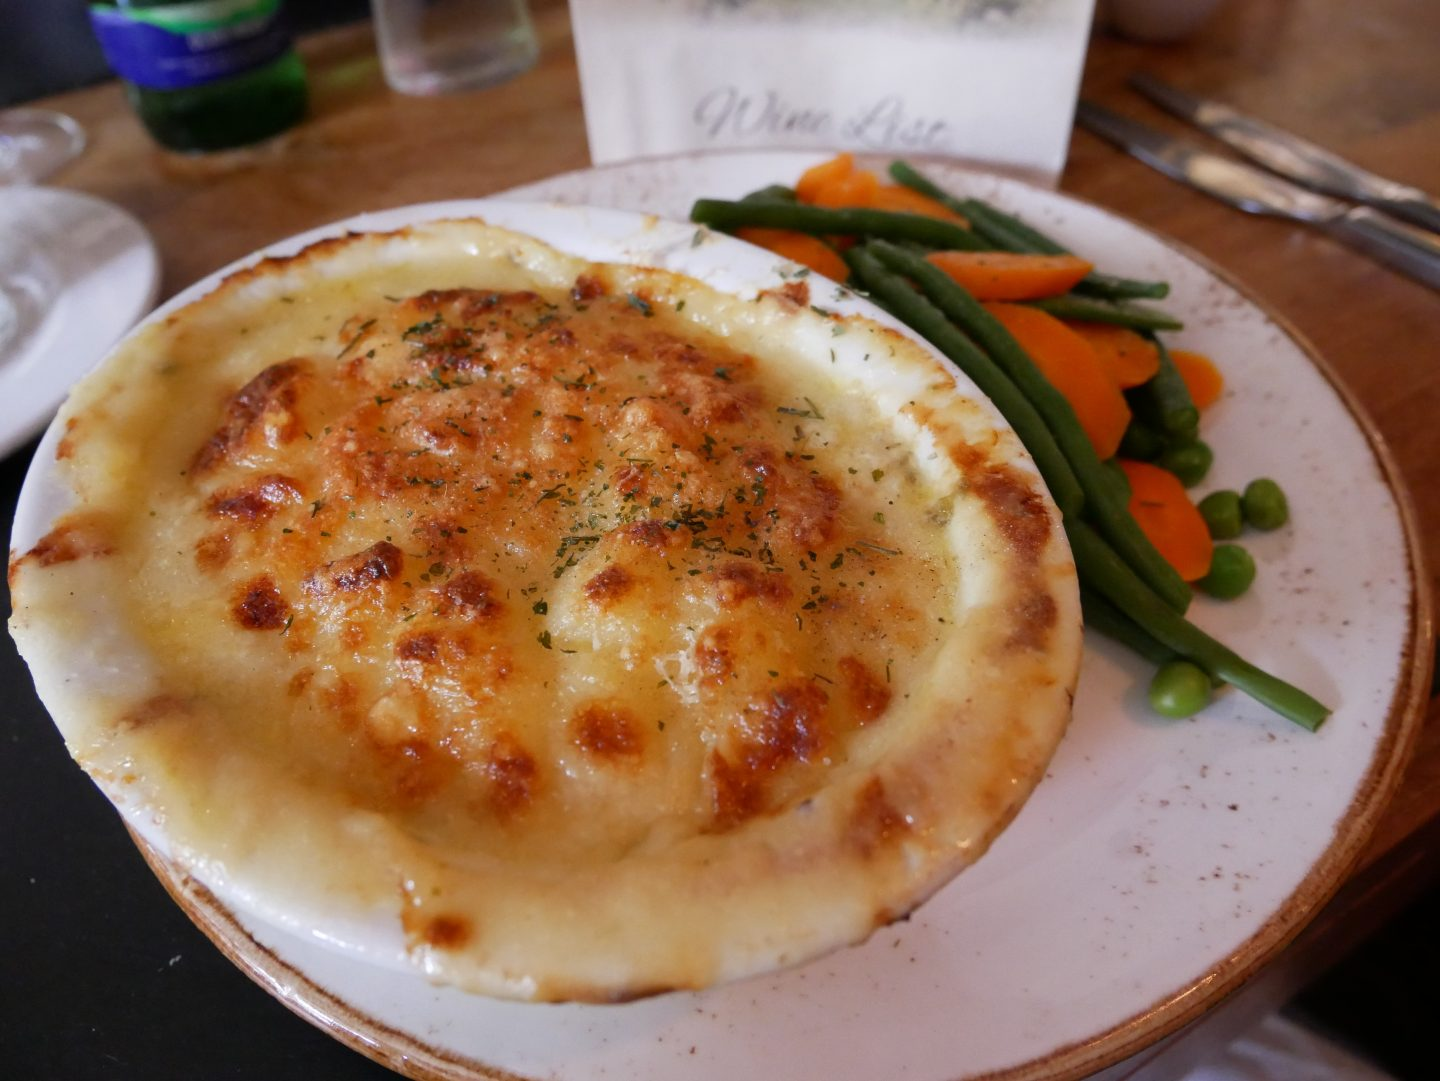 Seafood pie with seasonal veg at The Britannia Inn in the Gower, South-West Wales